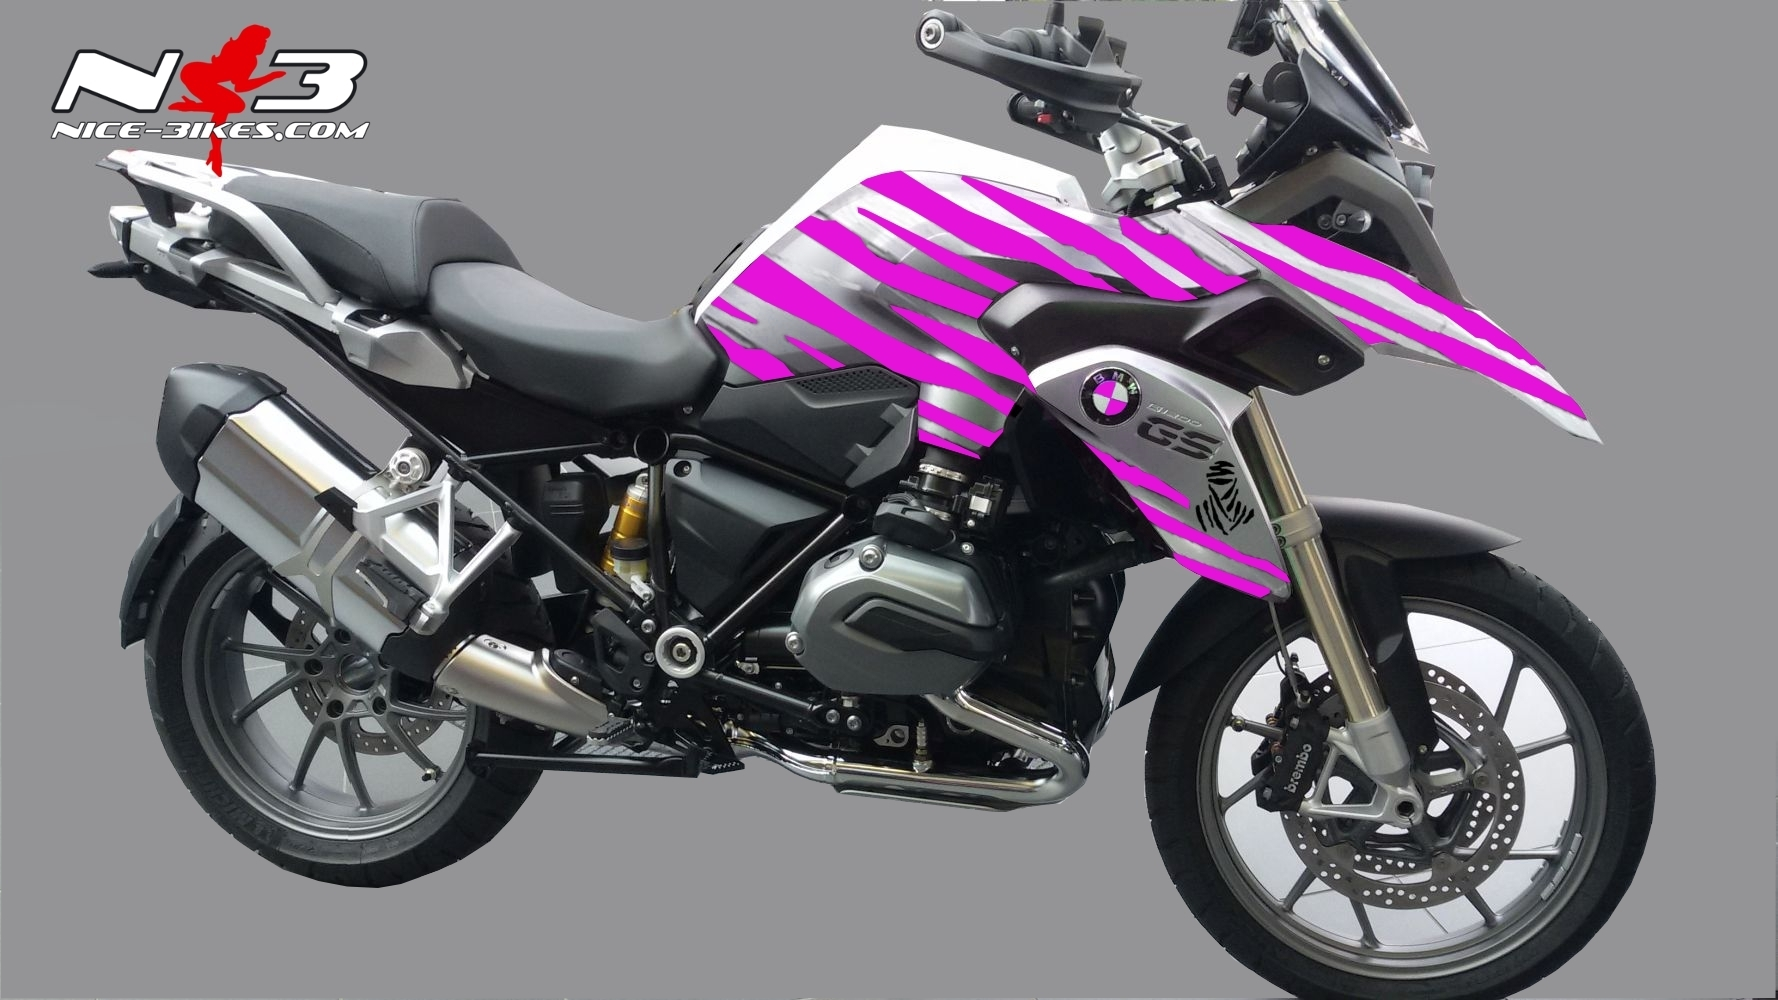 bmw gs dakar edition pink auf silberner maschine nice bikes shop. Black Bedroom Furniture Sets. Home Design Ideas